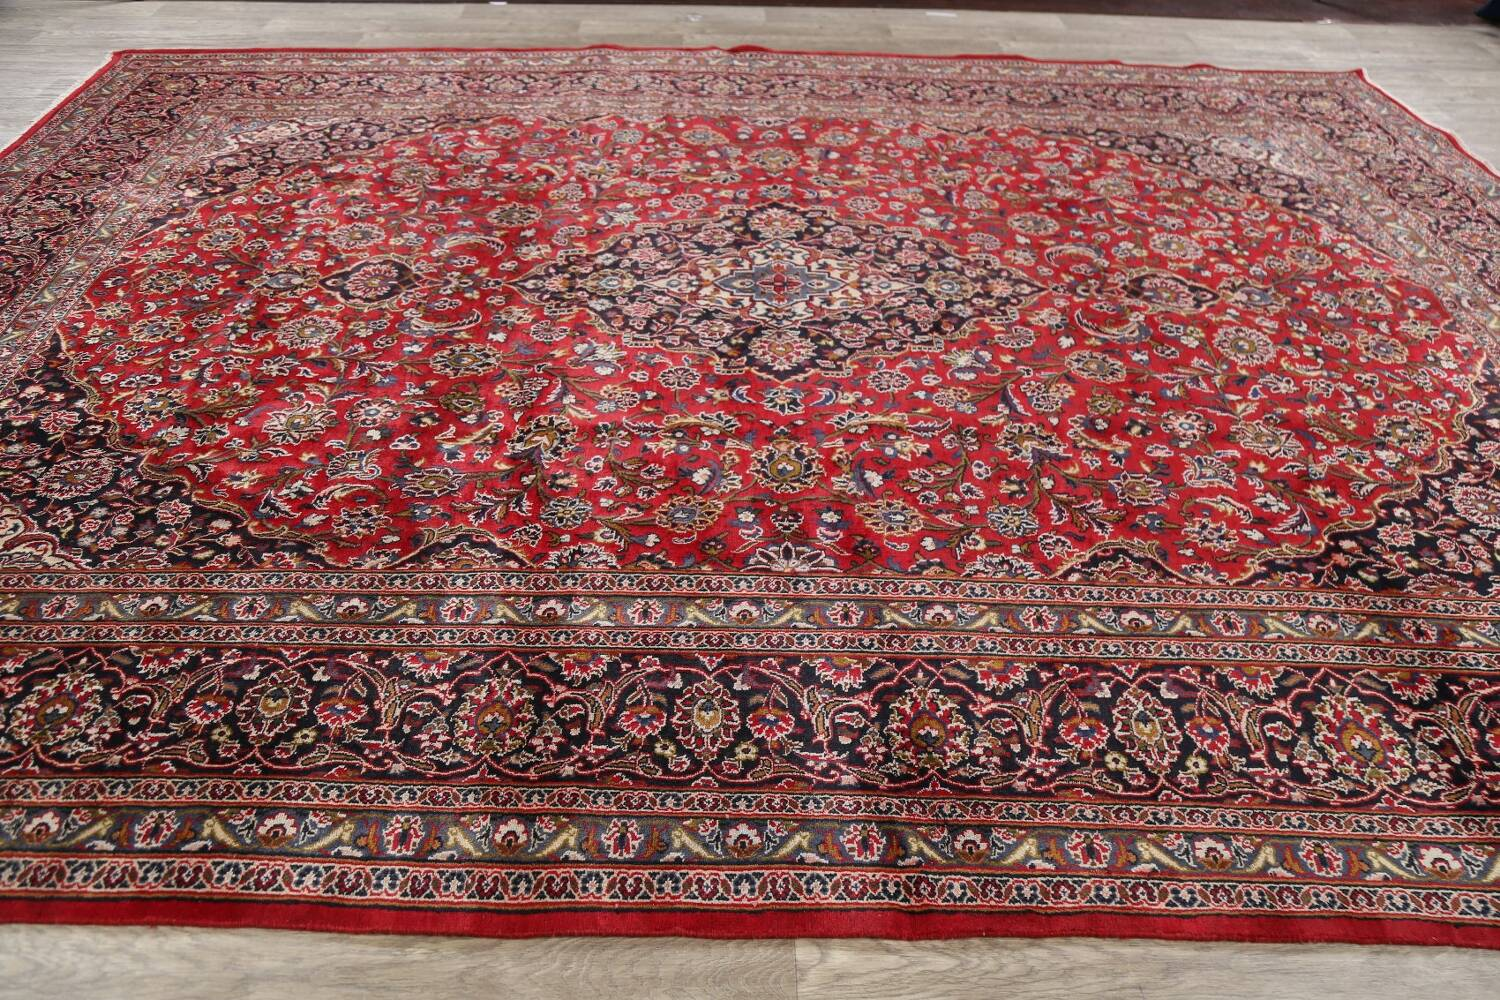 Vintage Floral Mashad Persian Red Area Rug 9x13 image 17